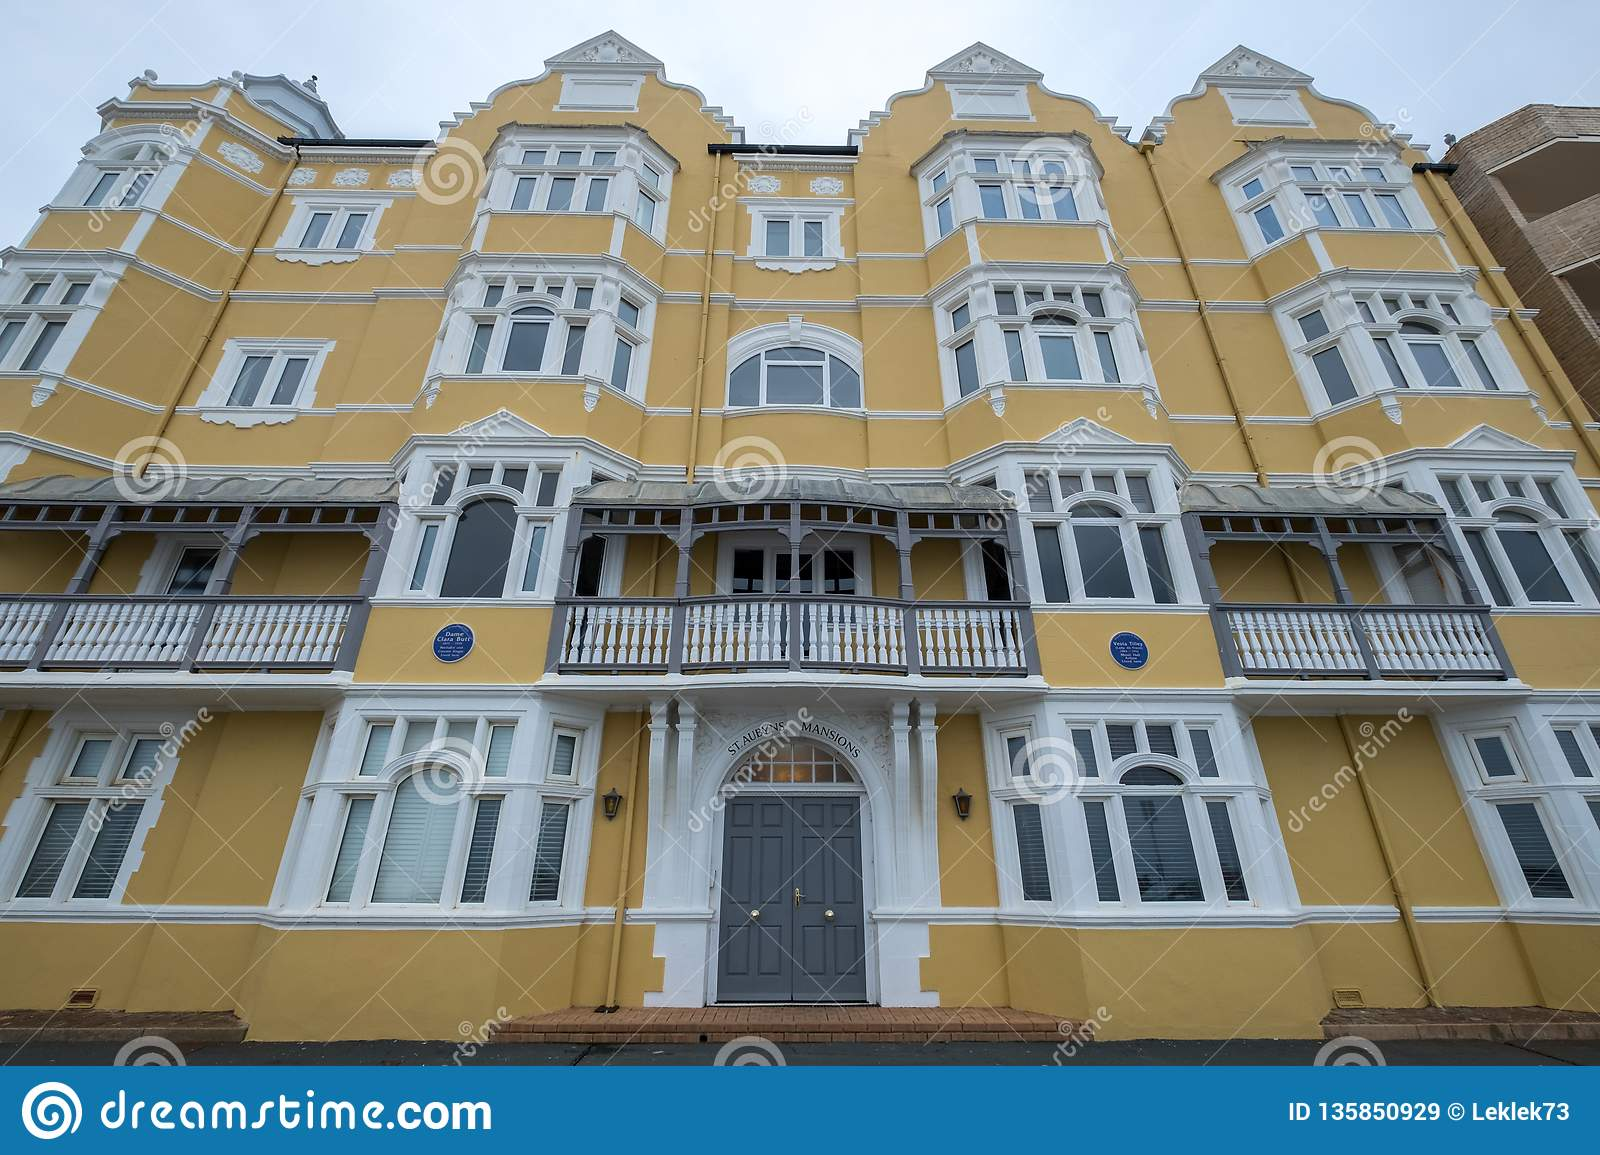 St Aubyns Mansions on Kings Esplanade, Hove, East Sussex, UK. Restored mustard coloured block of flats overlooking the sea